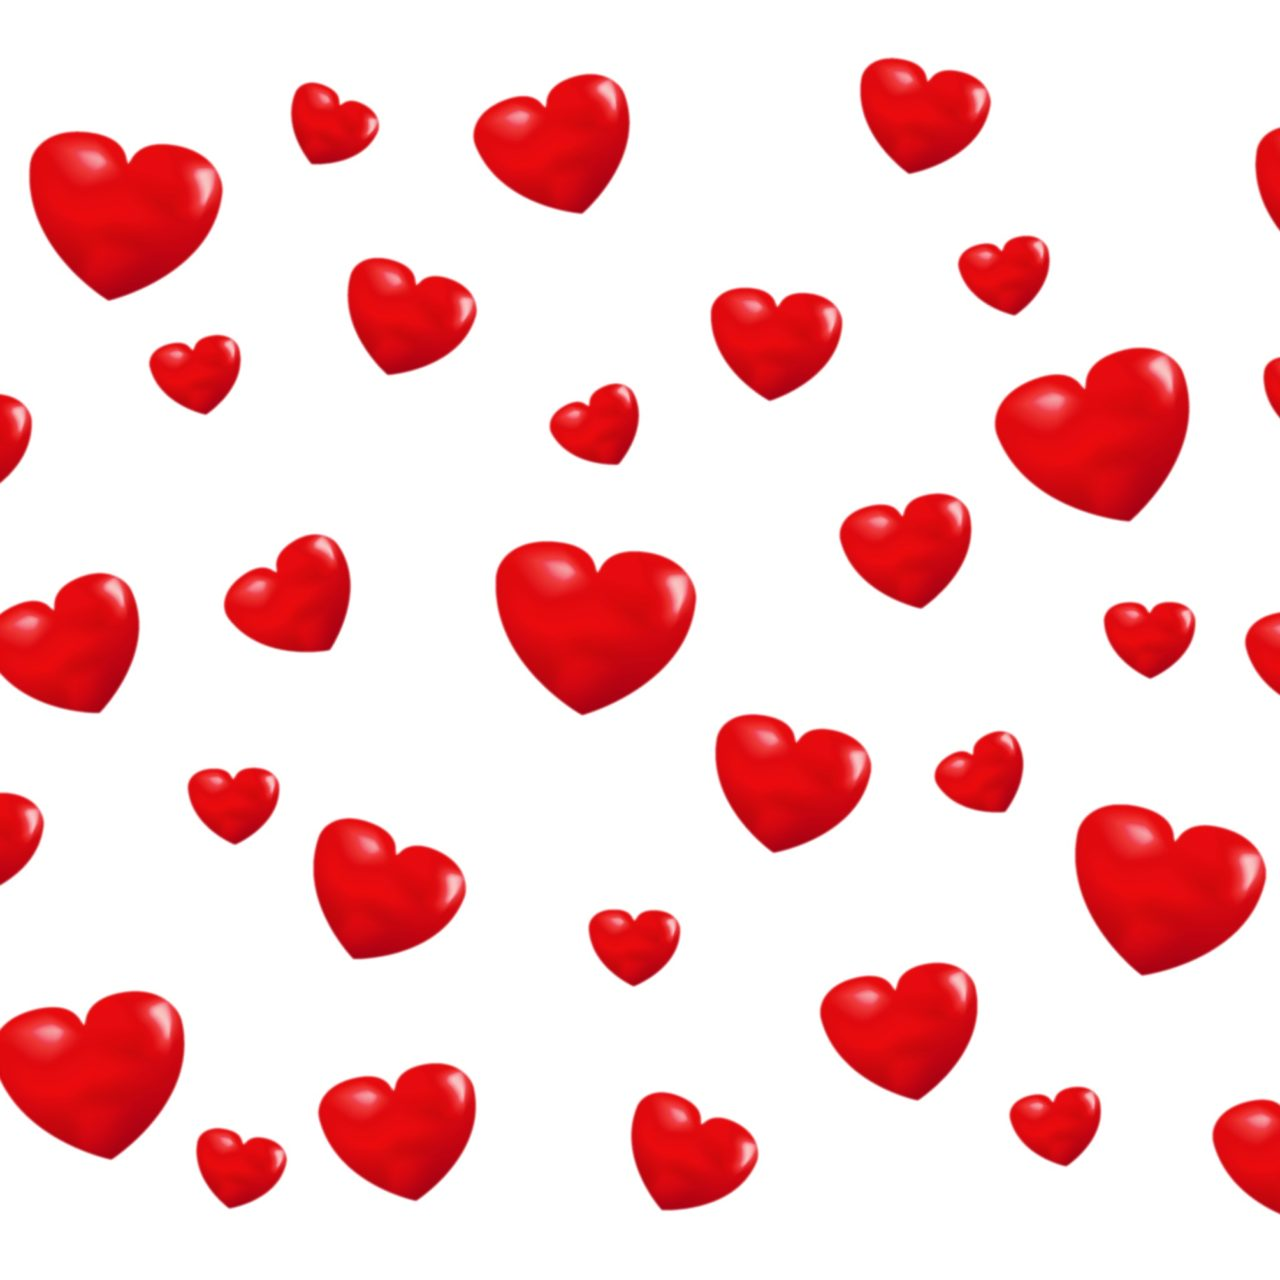 Hearts-Valentines-Day-Art-HD-Wallpapers-1280x1280